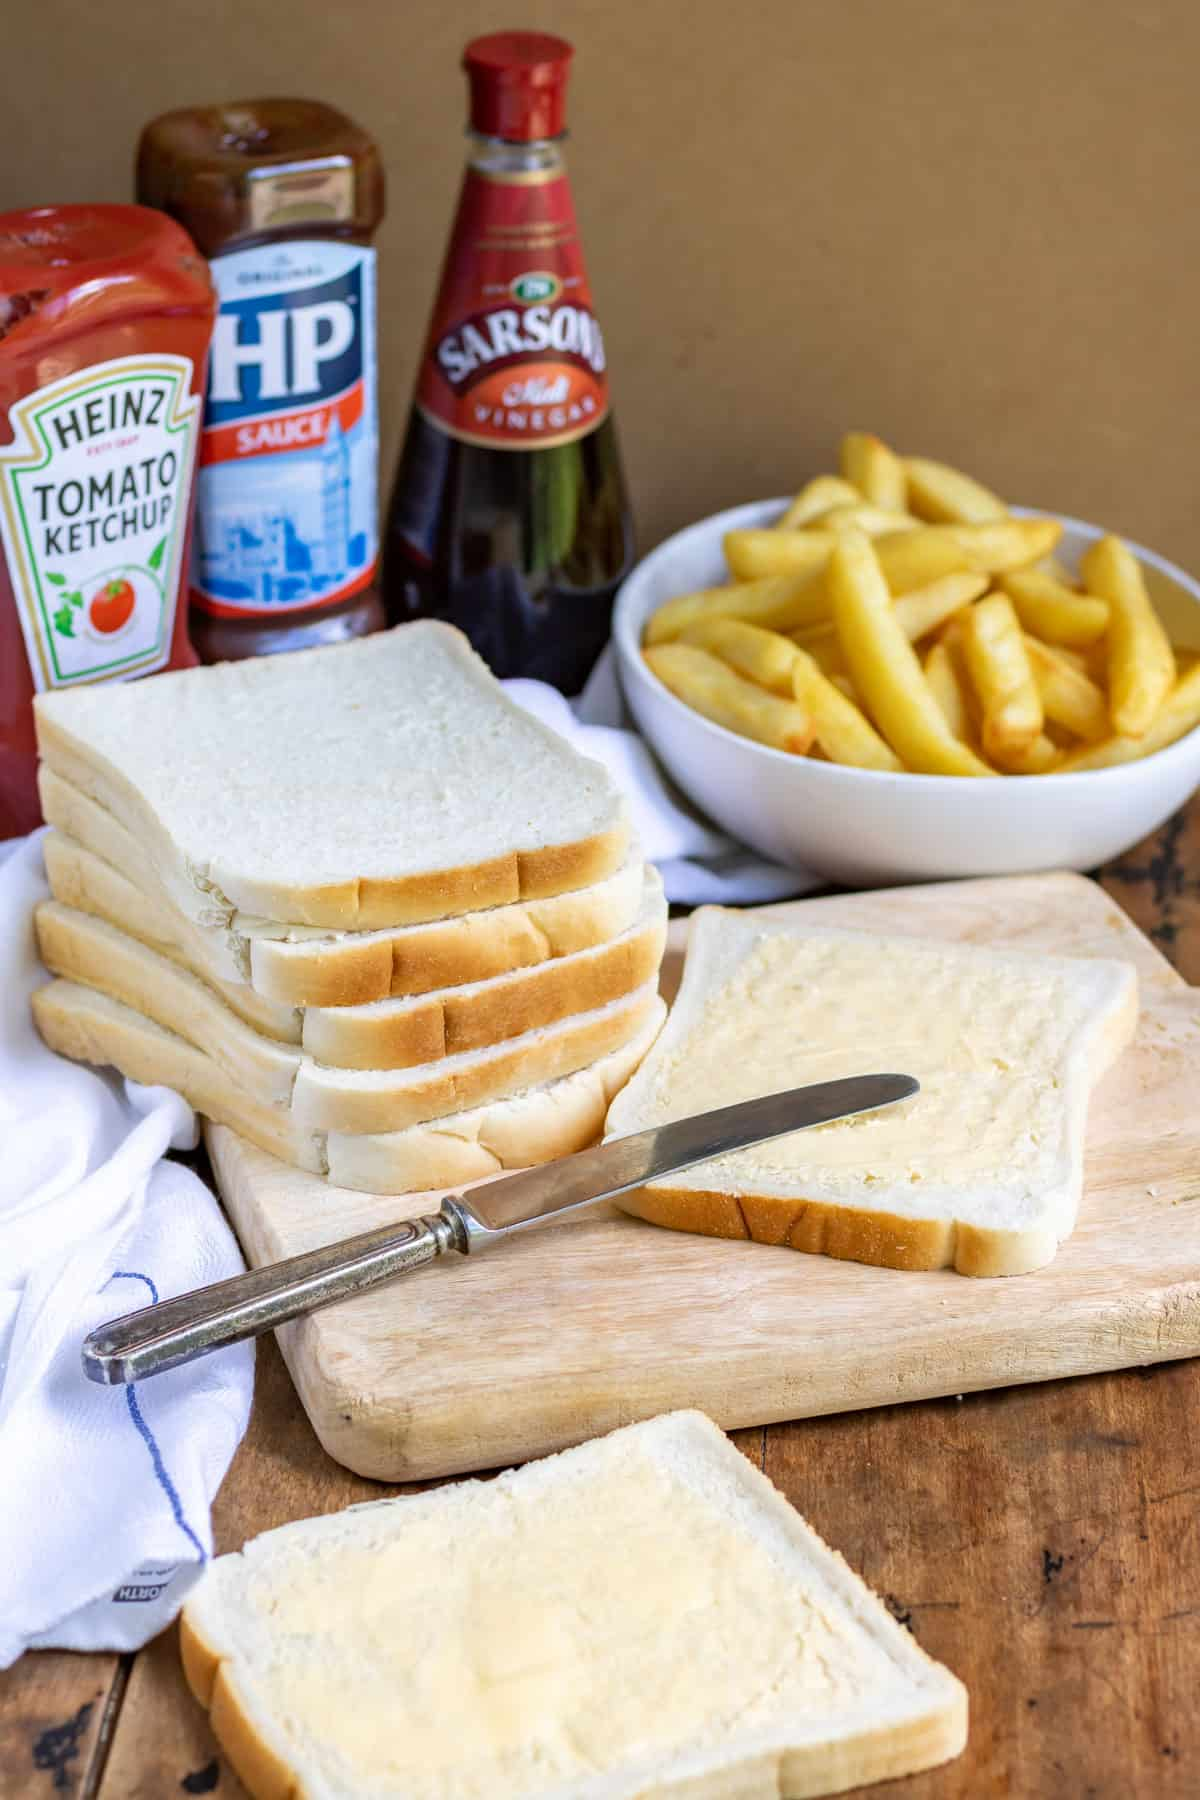 Stack of bread with a slice being buttered, in front of a bowl of fries.